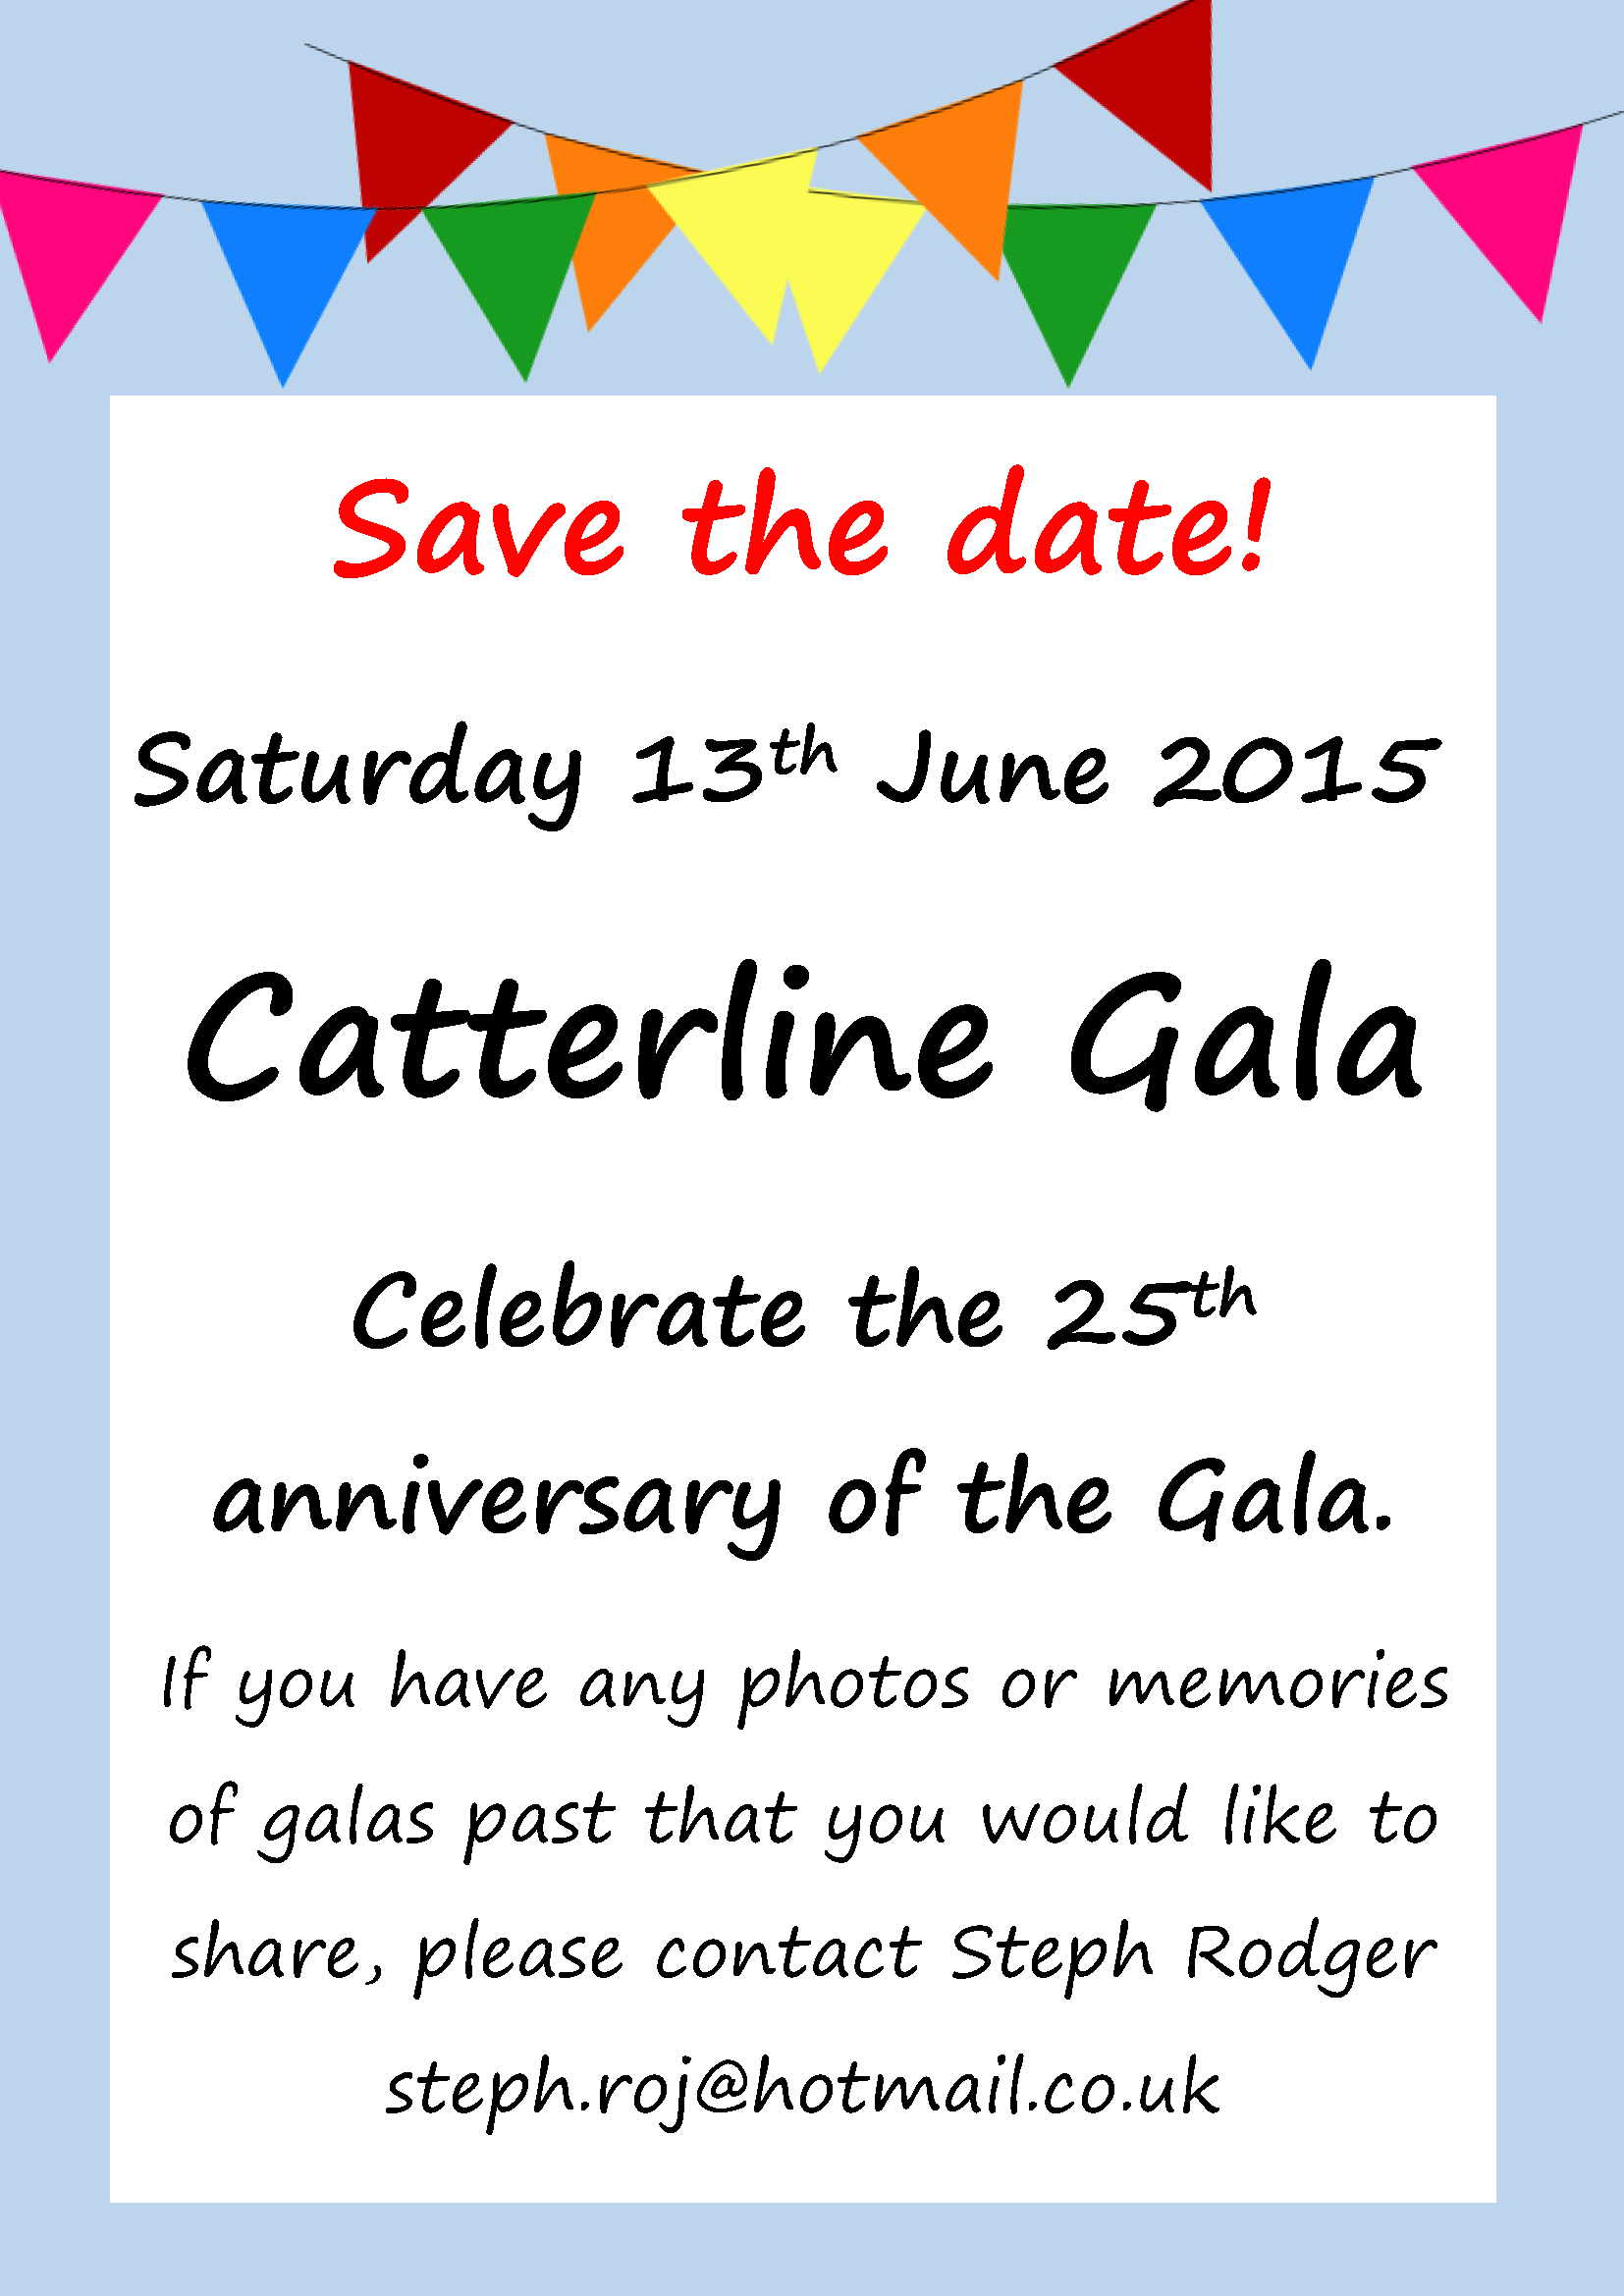 Catterline Gala 2015 - Save the Date